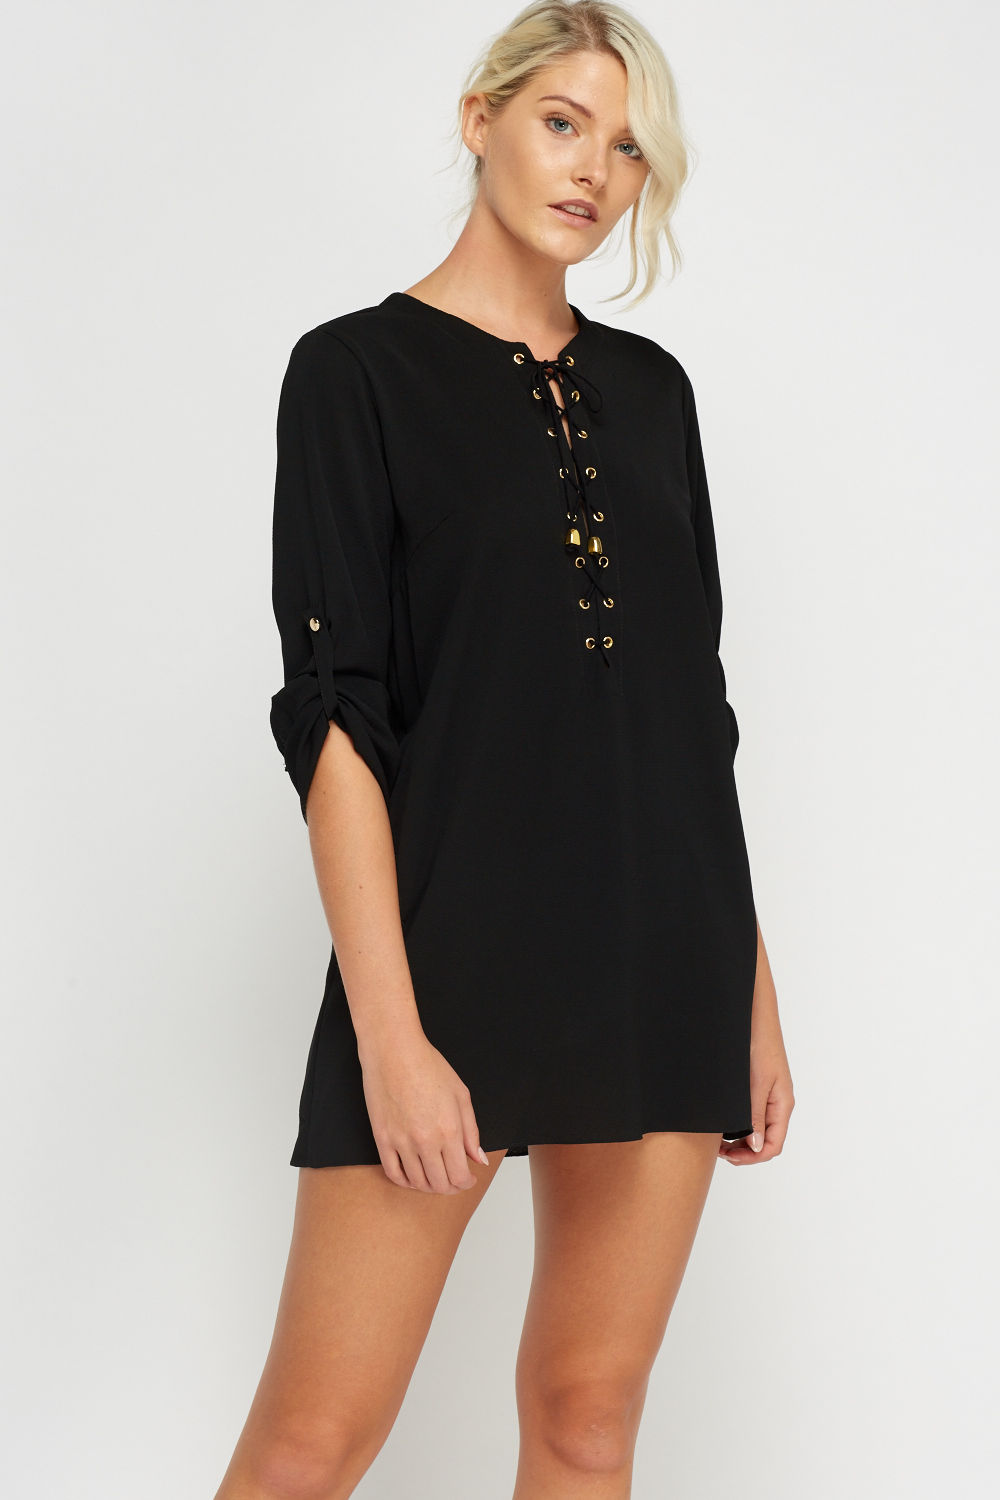 Tunic Dress | Buy cheap Tunic Dress for just £5 on ...